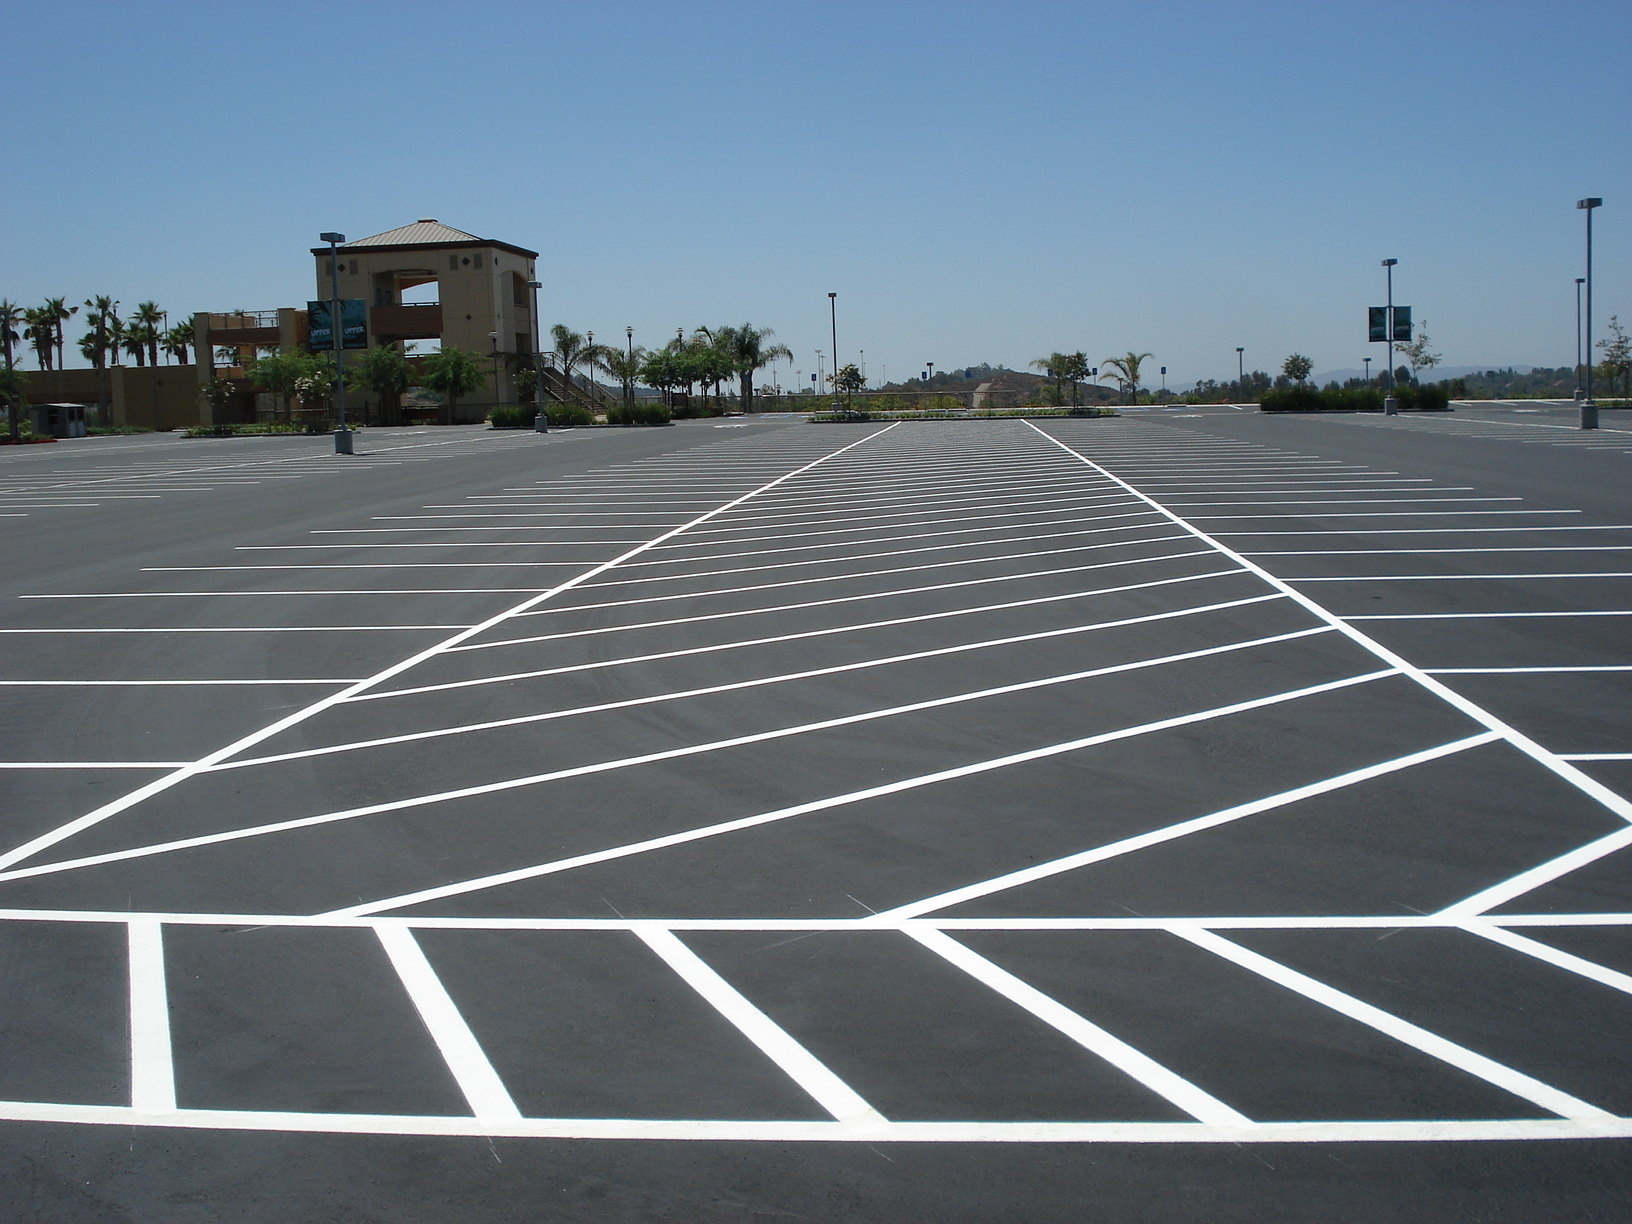 01.Parking lot striping.jpg